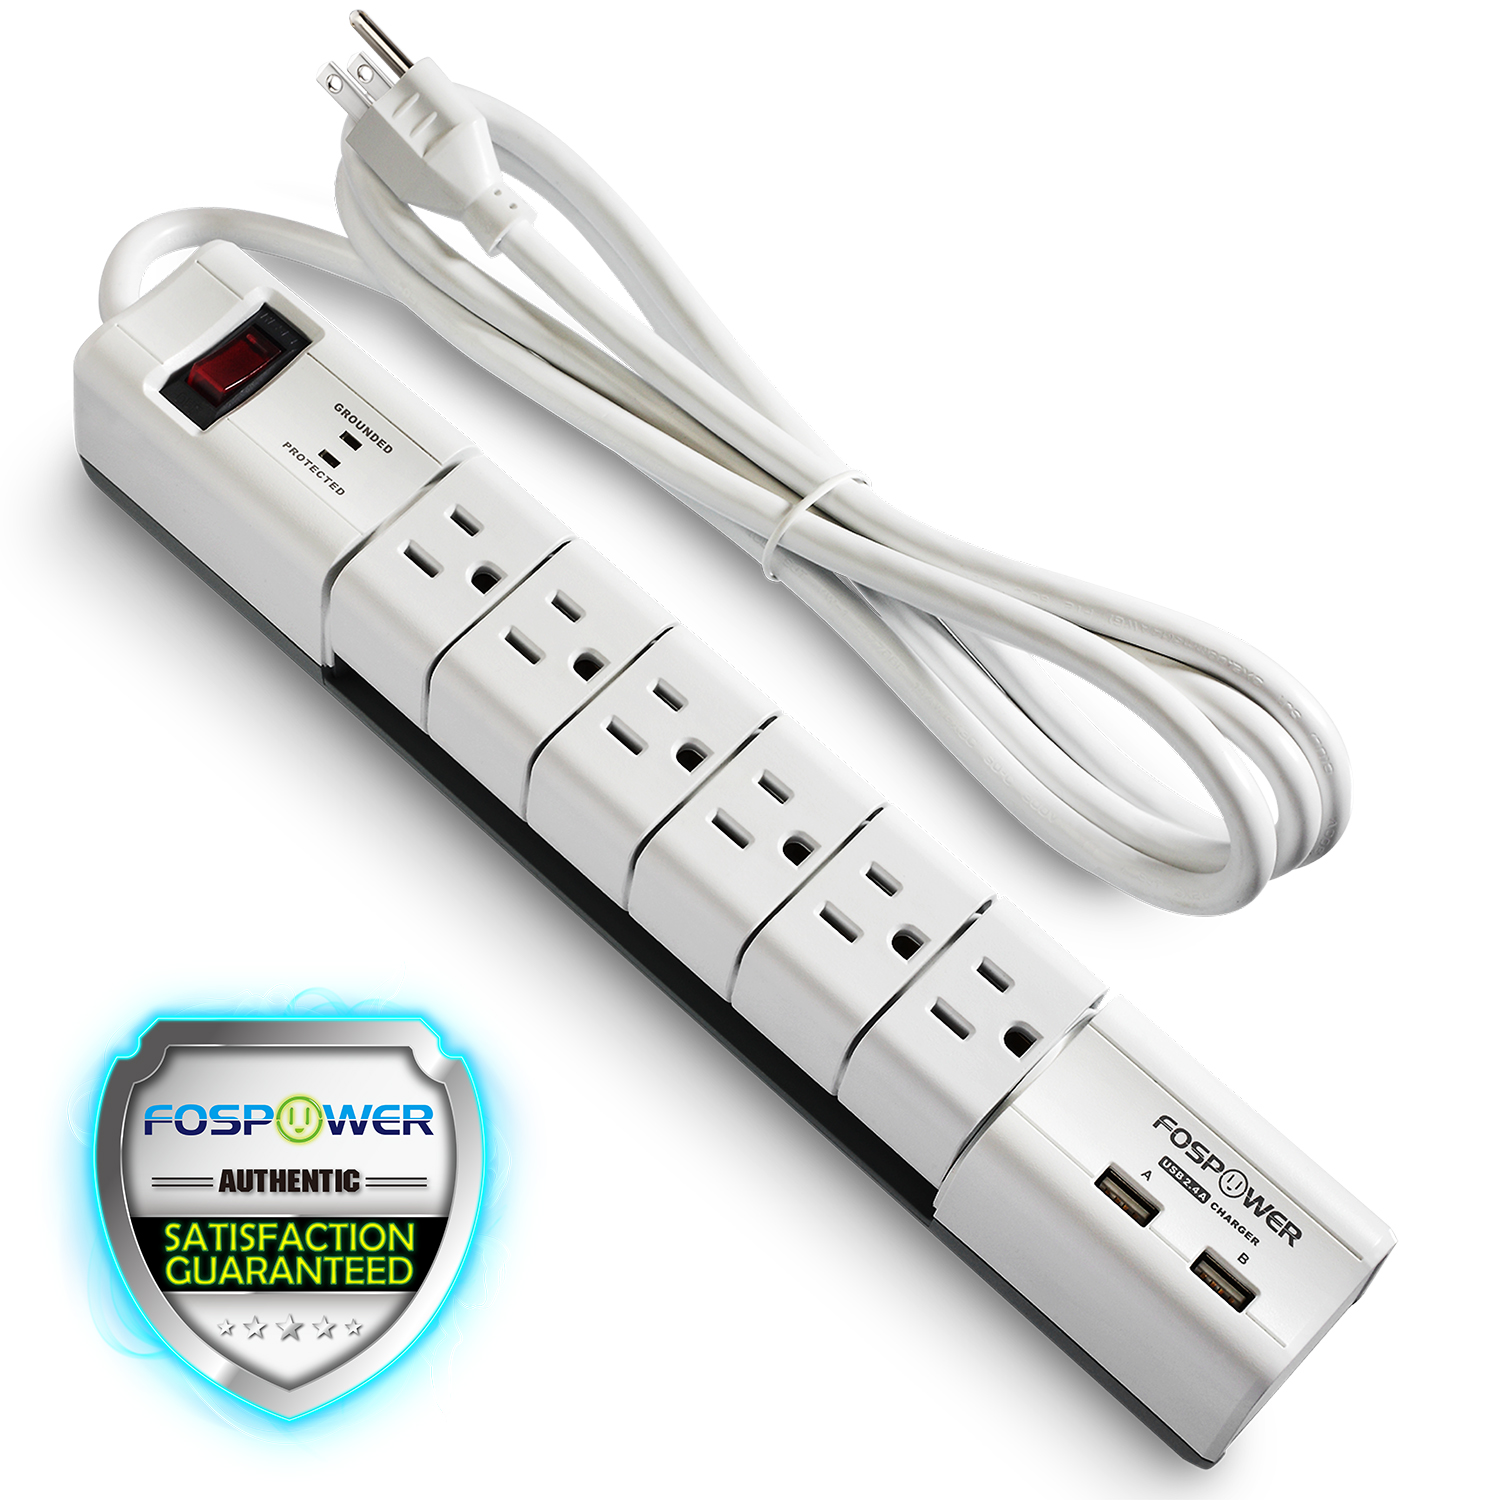 fospower s6su2j5 6 outlet power strip surge protector swivel and 2 usb charging ports ul listed